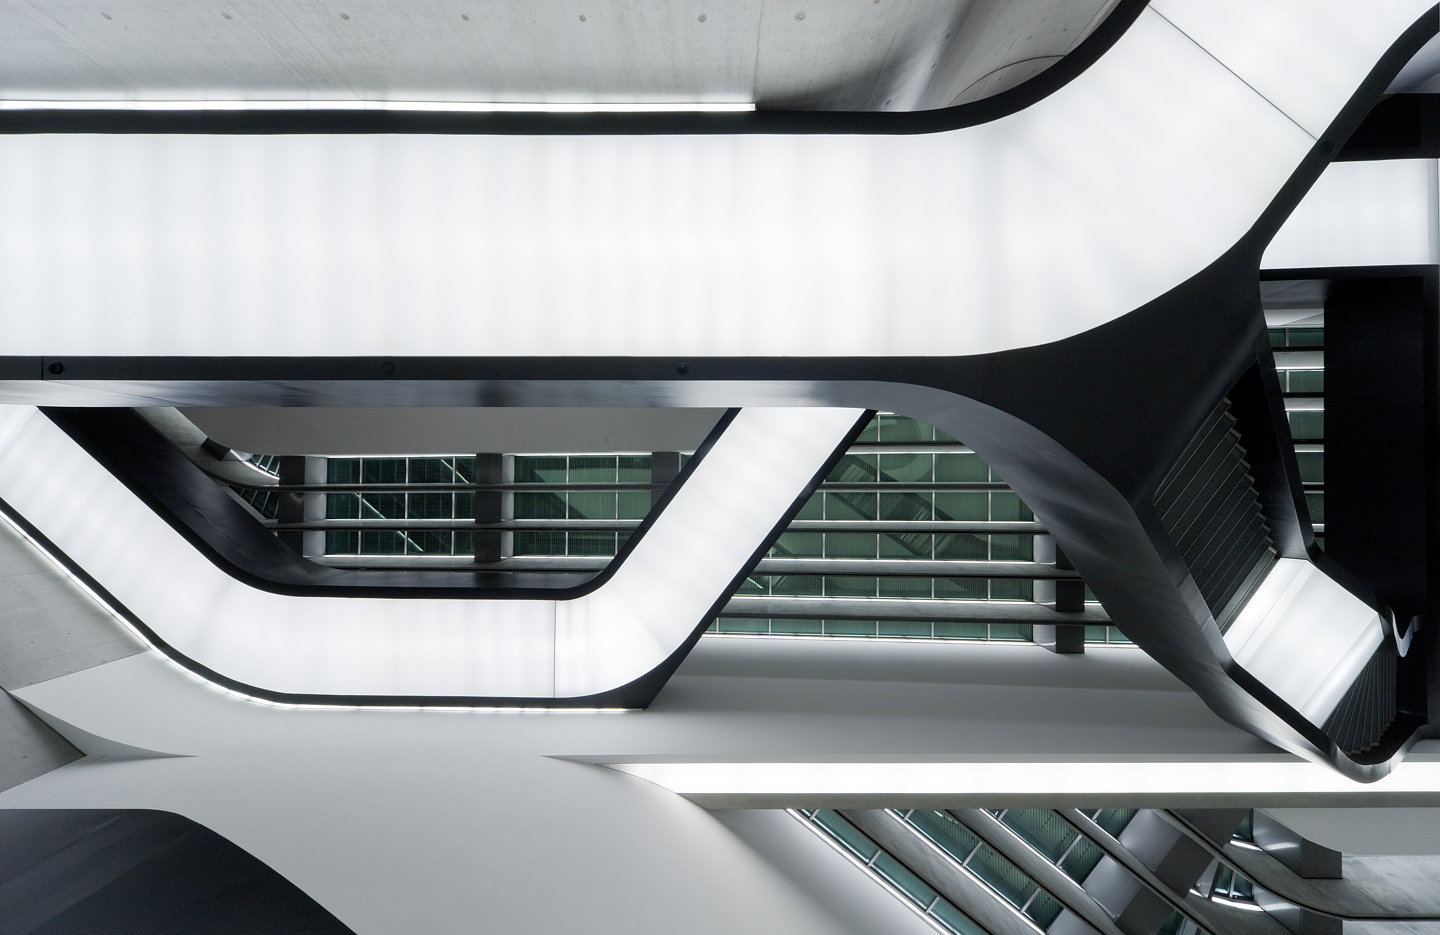 Maxxi Museum In Rome By Zaha Hadid Architects Wins The Riba Stirling Prize 2010